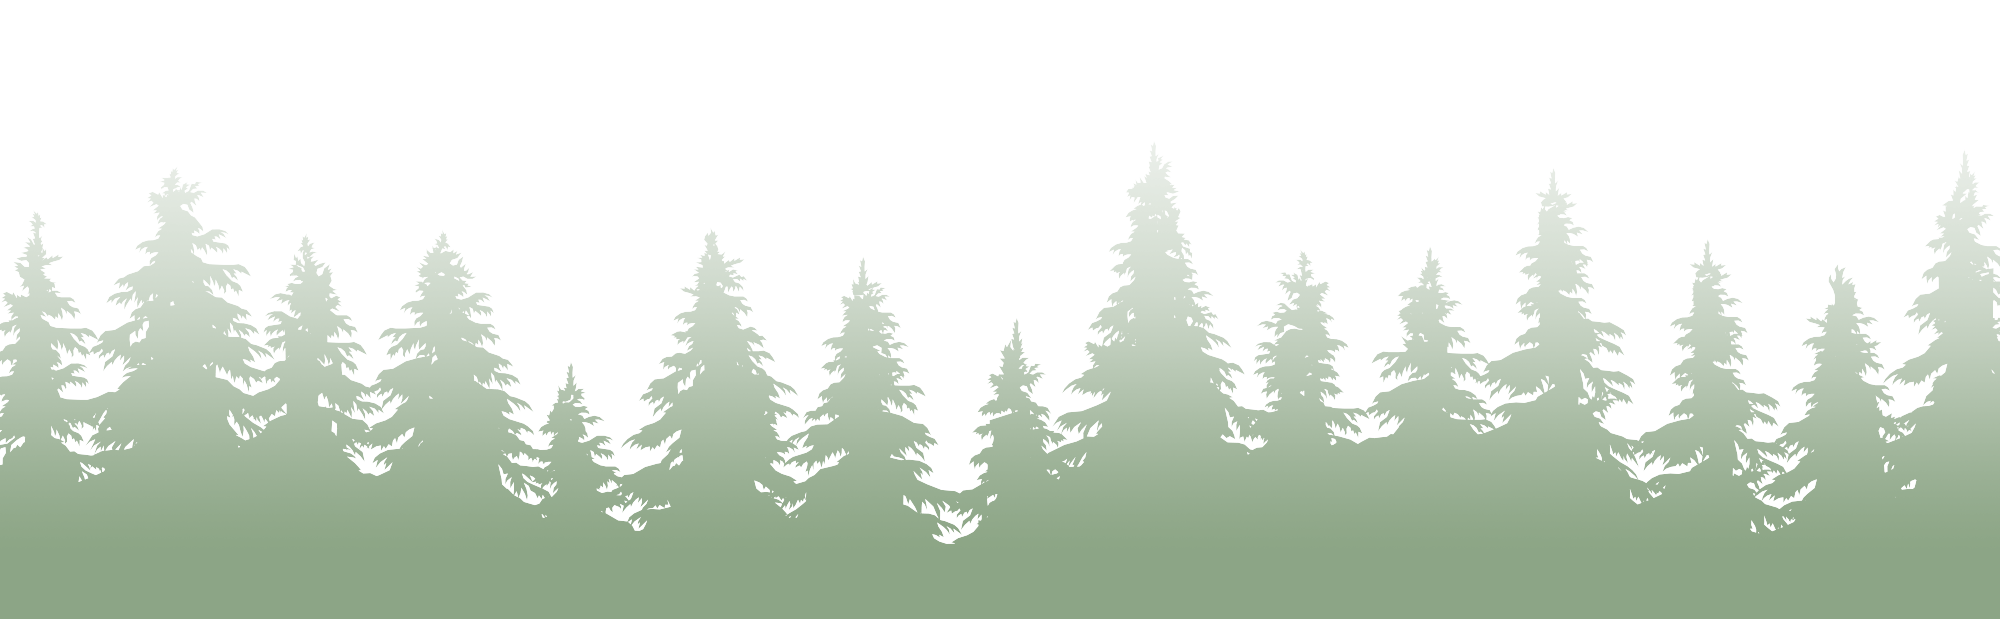 Silhouette of pine tree forest going from solid green at the bottom and fading to transparent at the top